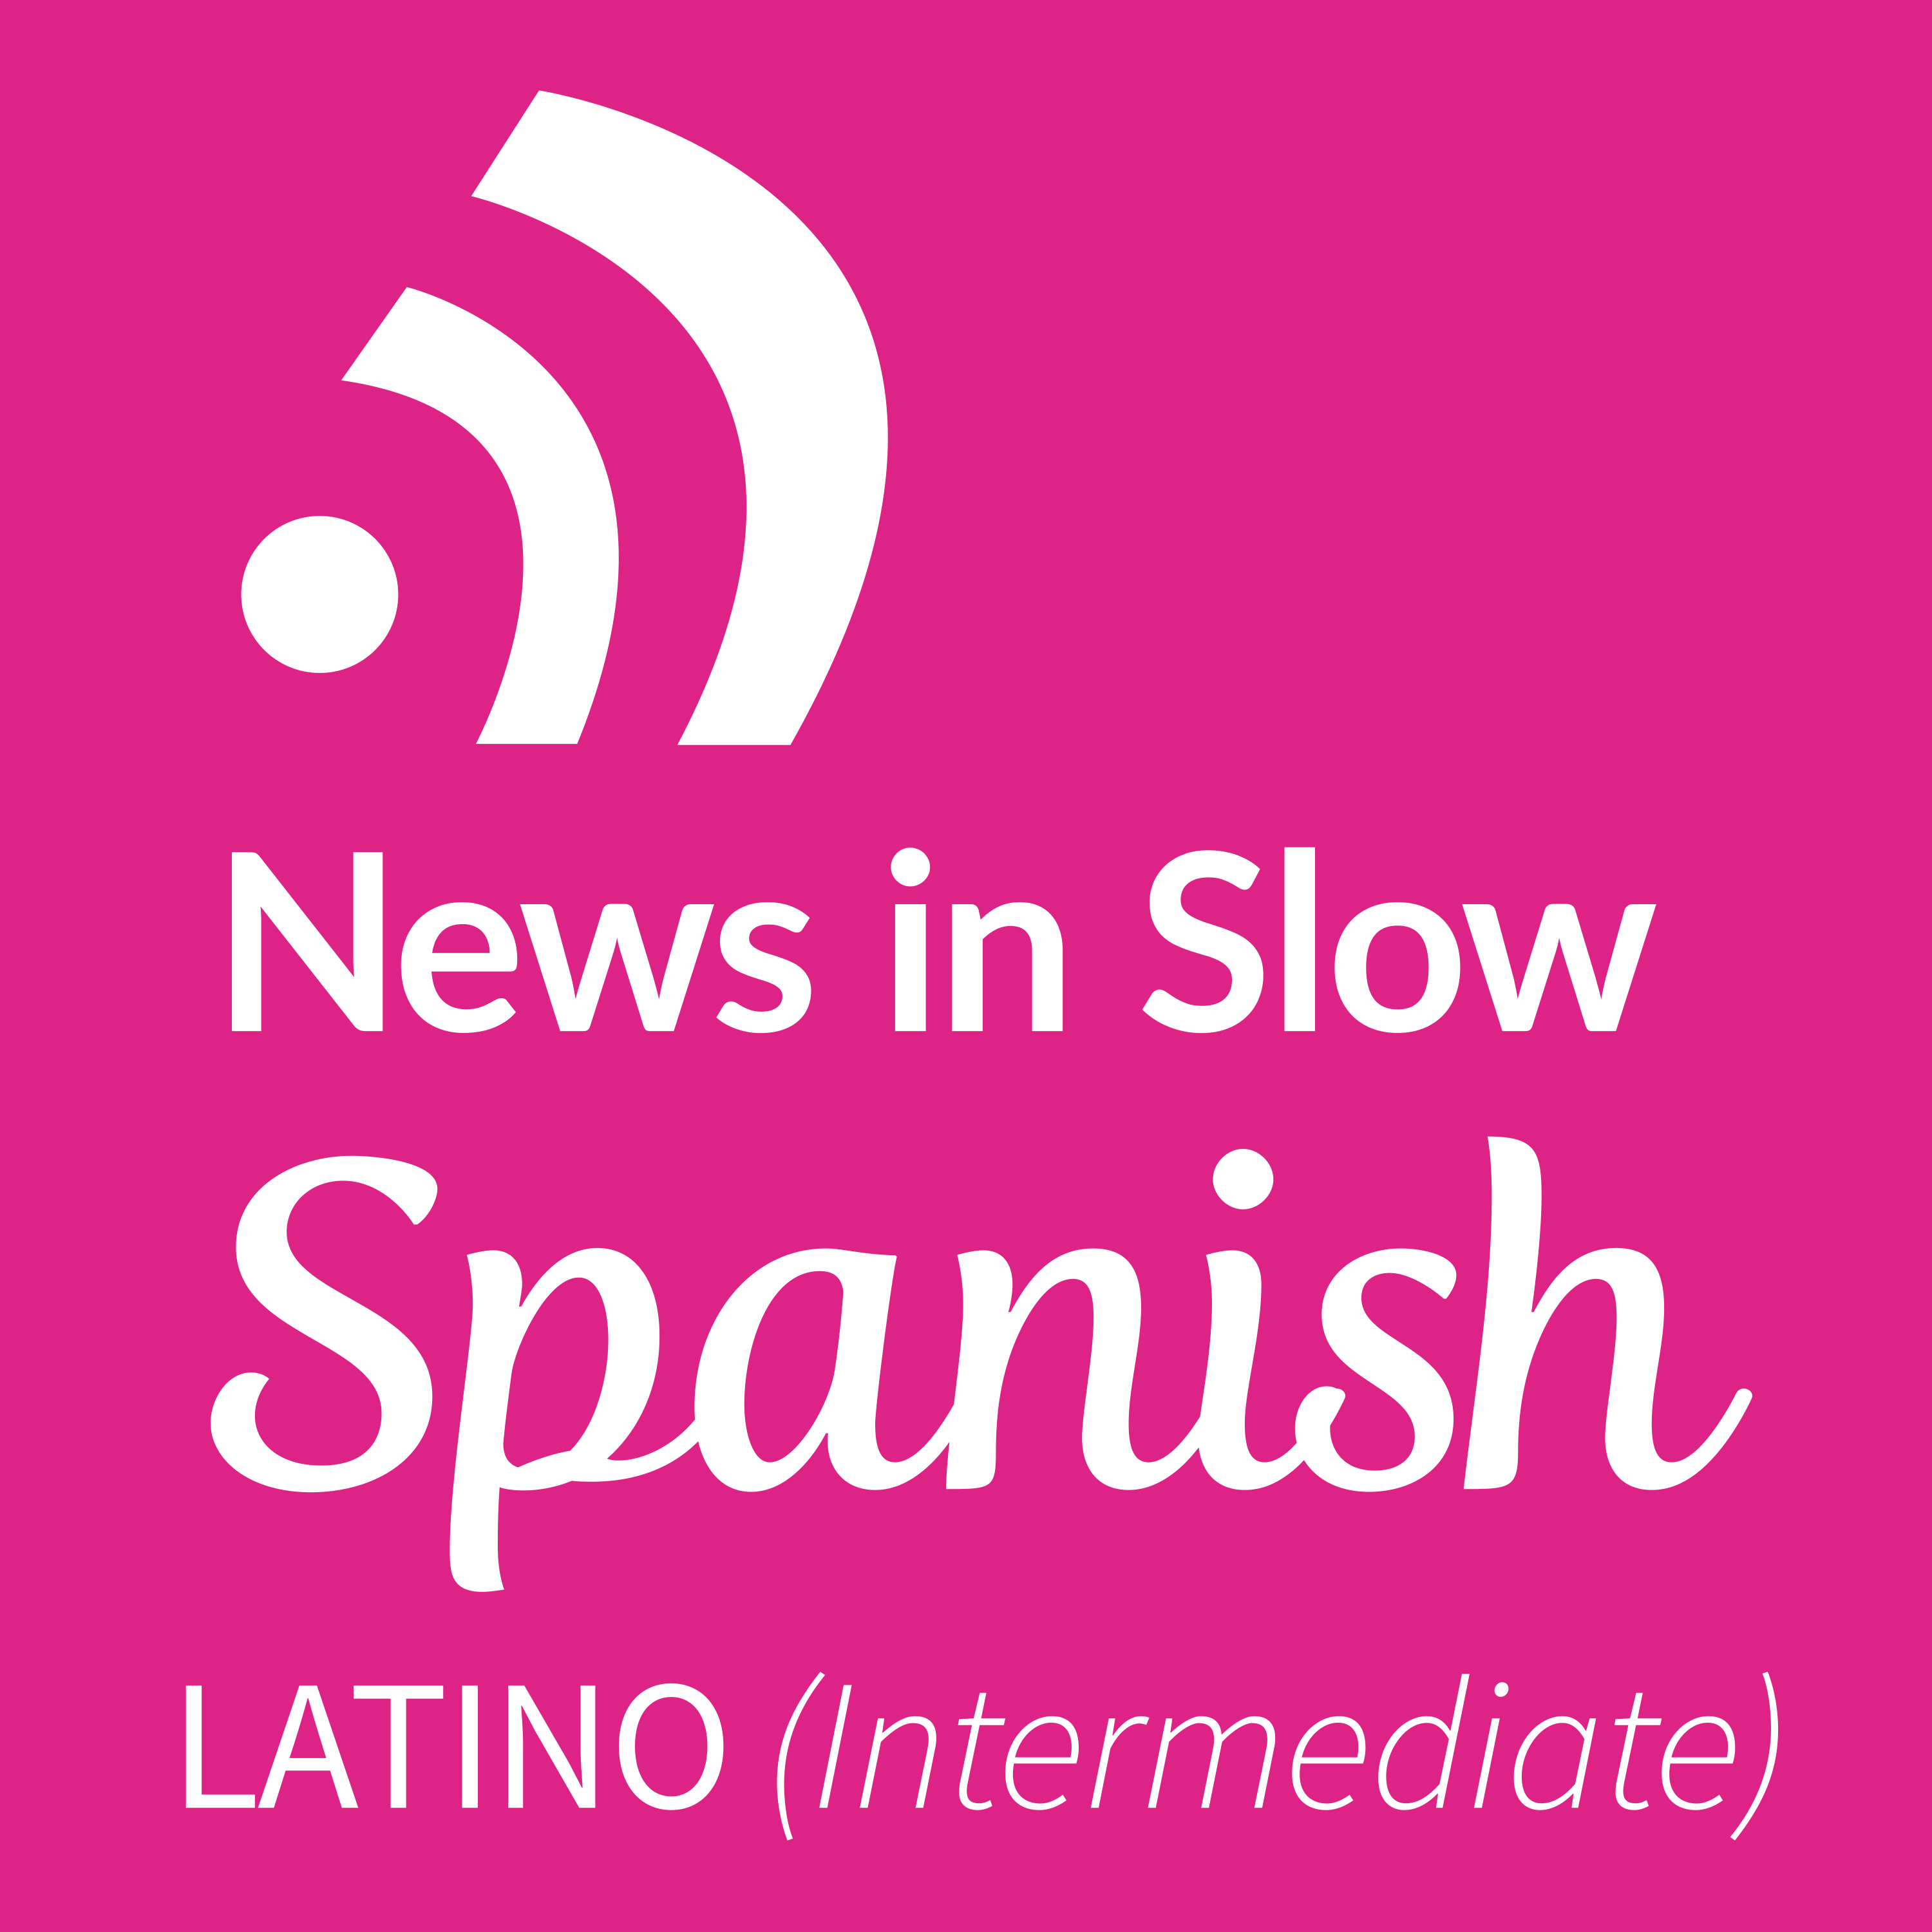 News in Slow Spanish Latino - # 135 - Spanish grammar, news and expressions